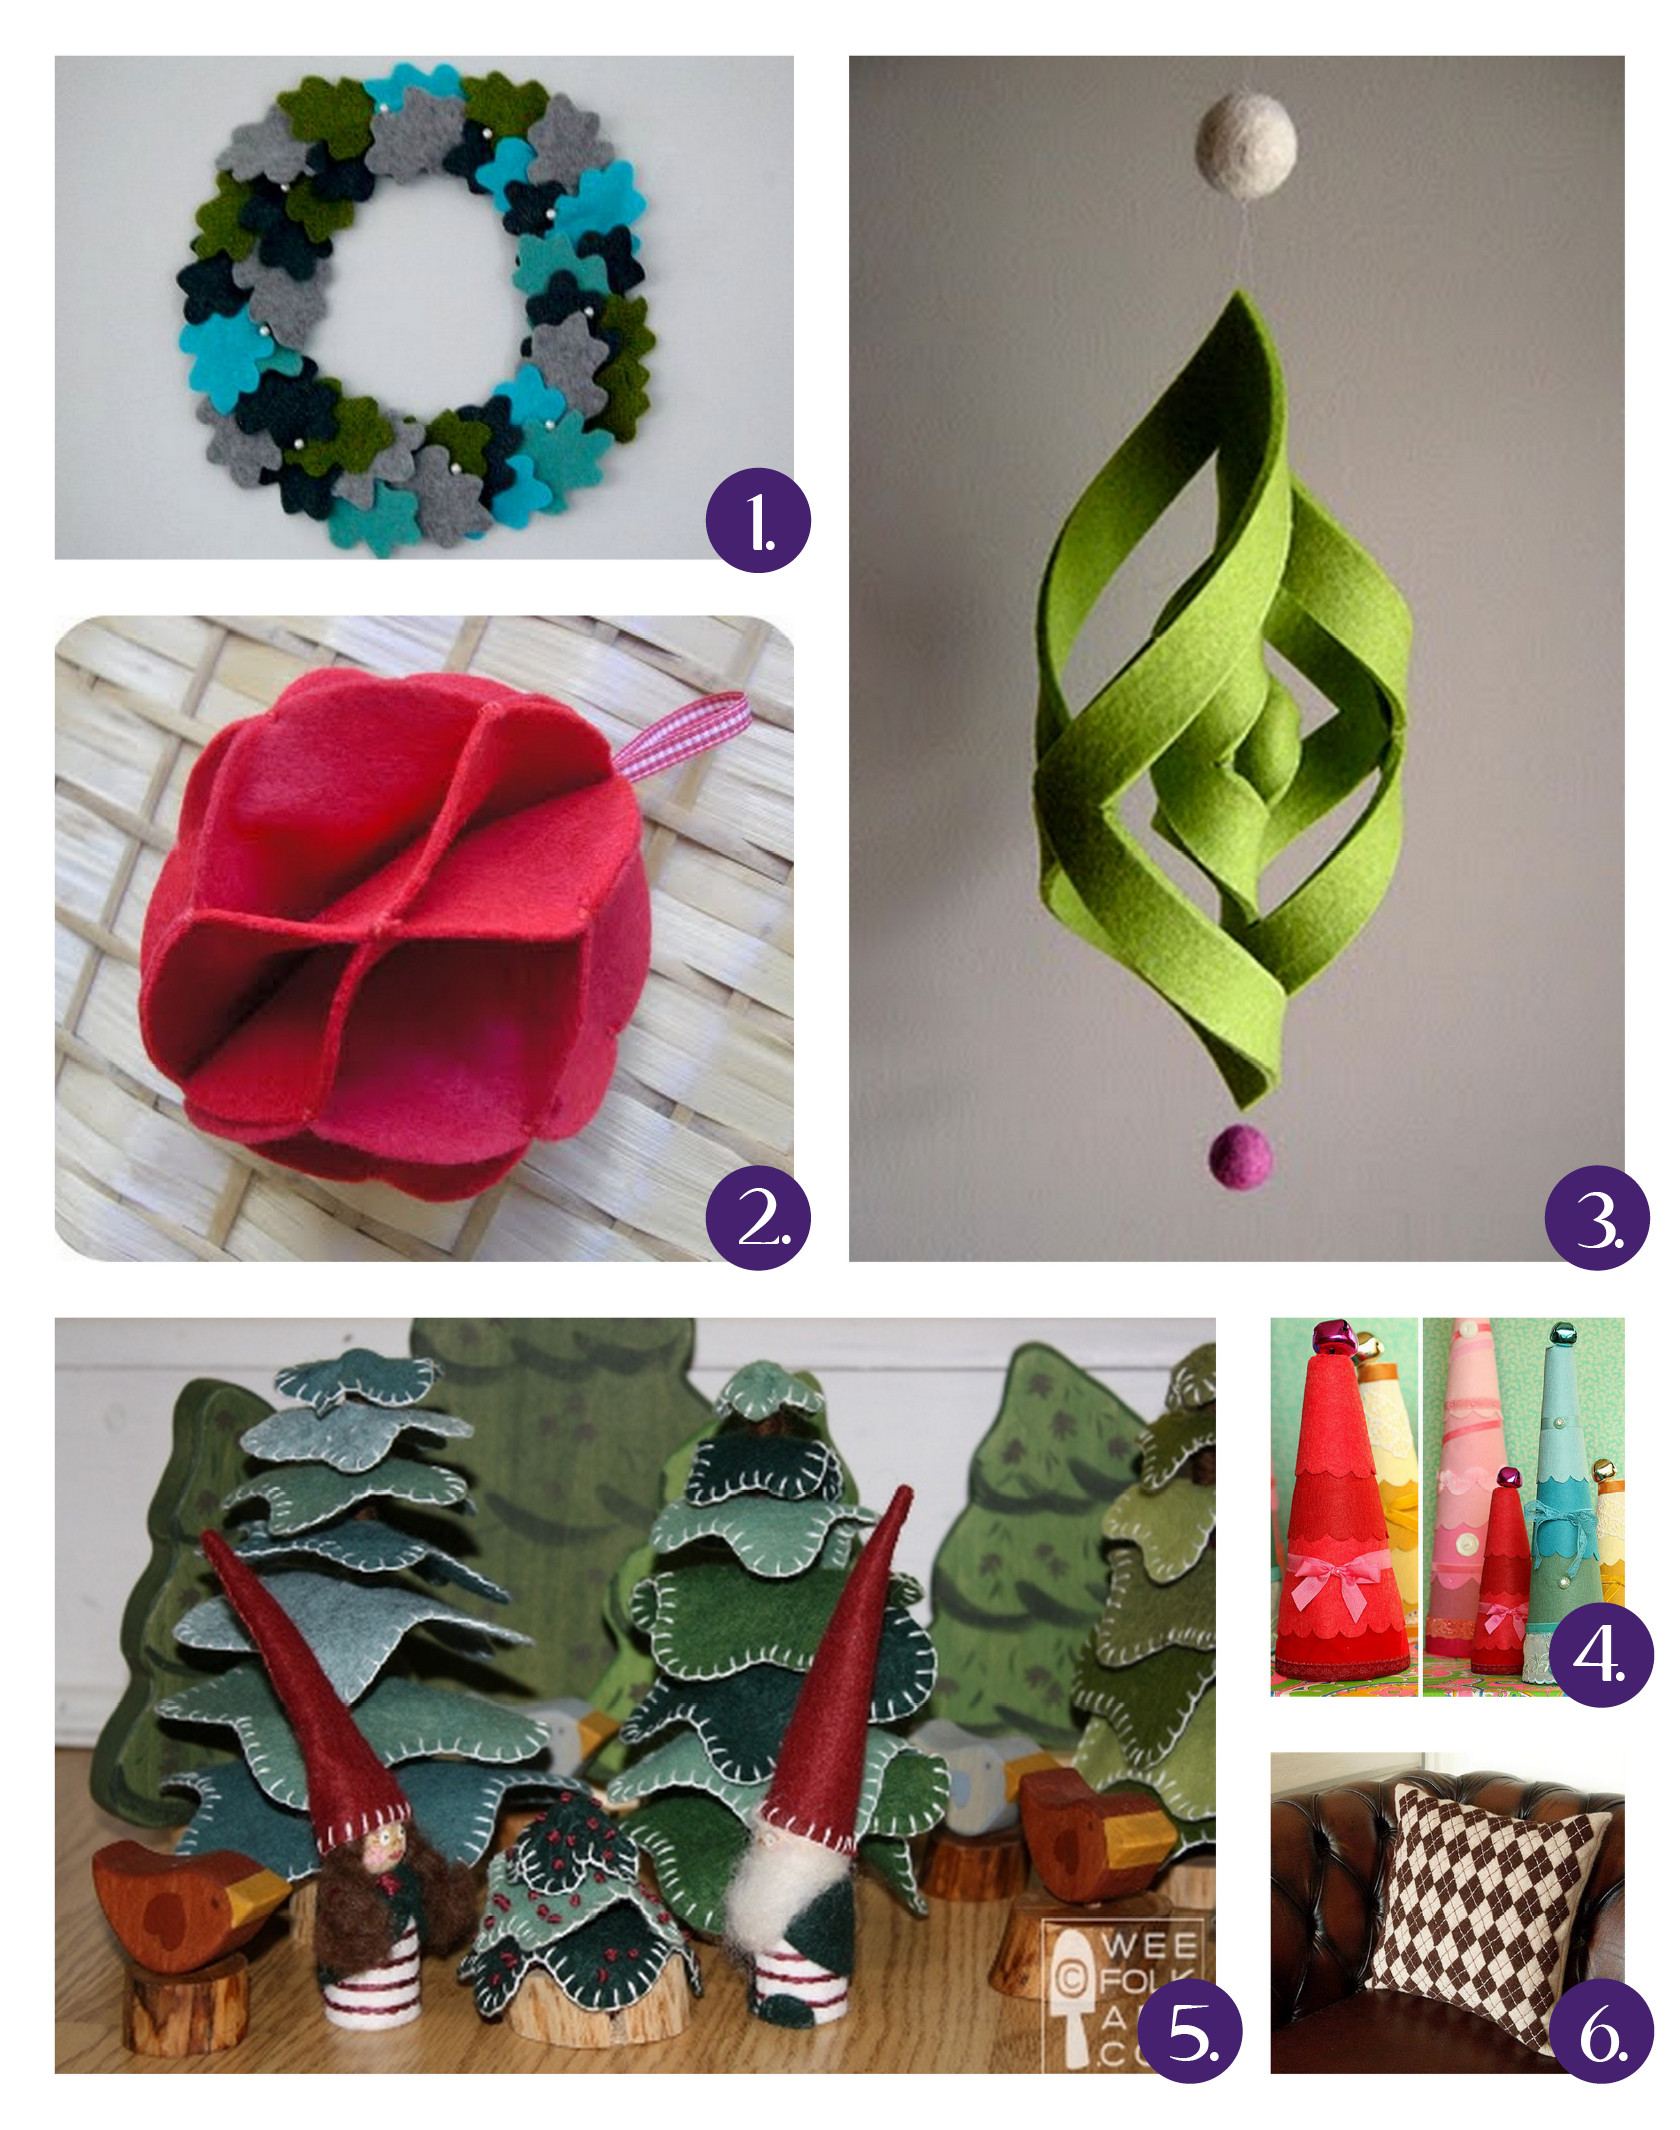 Best ideas about DIY Christmas Crafts . Save or Pin DIY Christmas Felt Crafts Now.